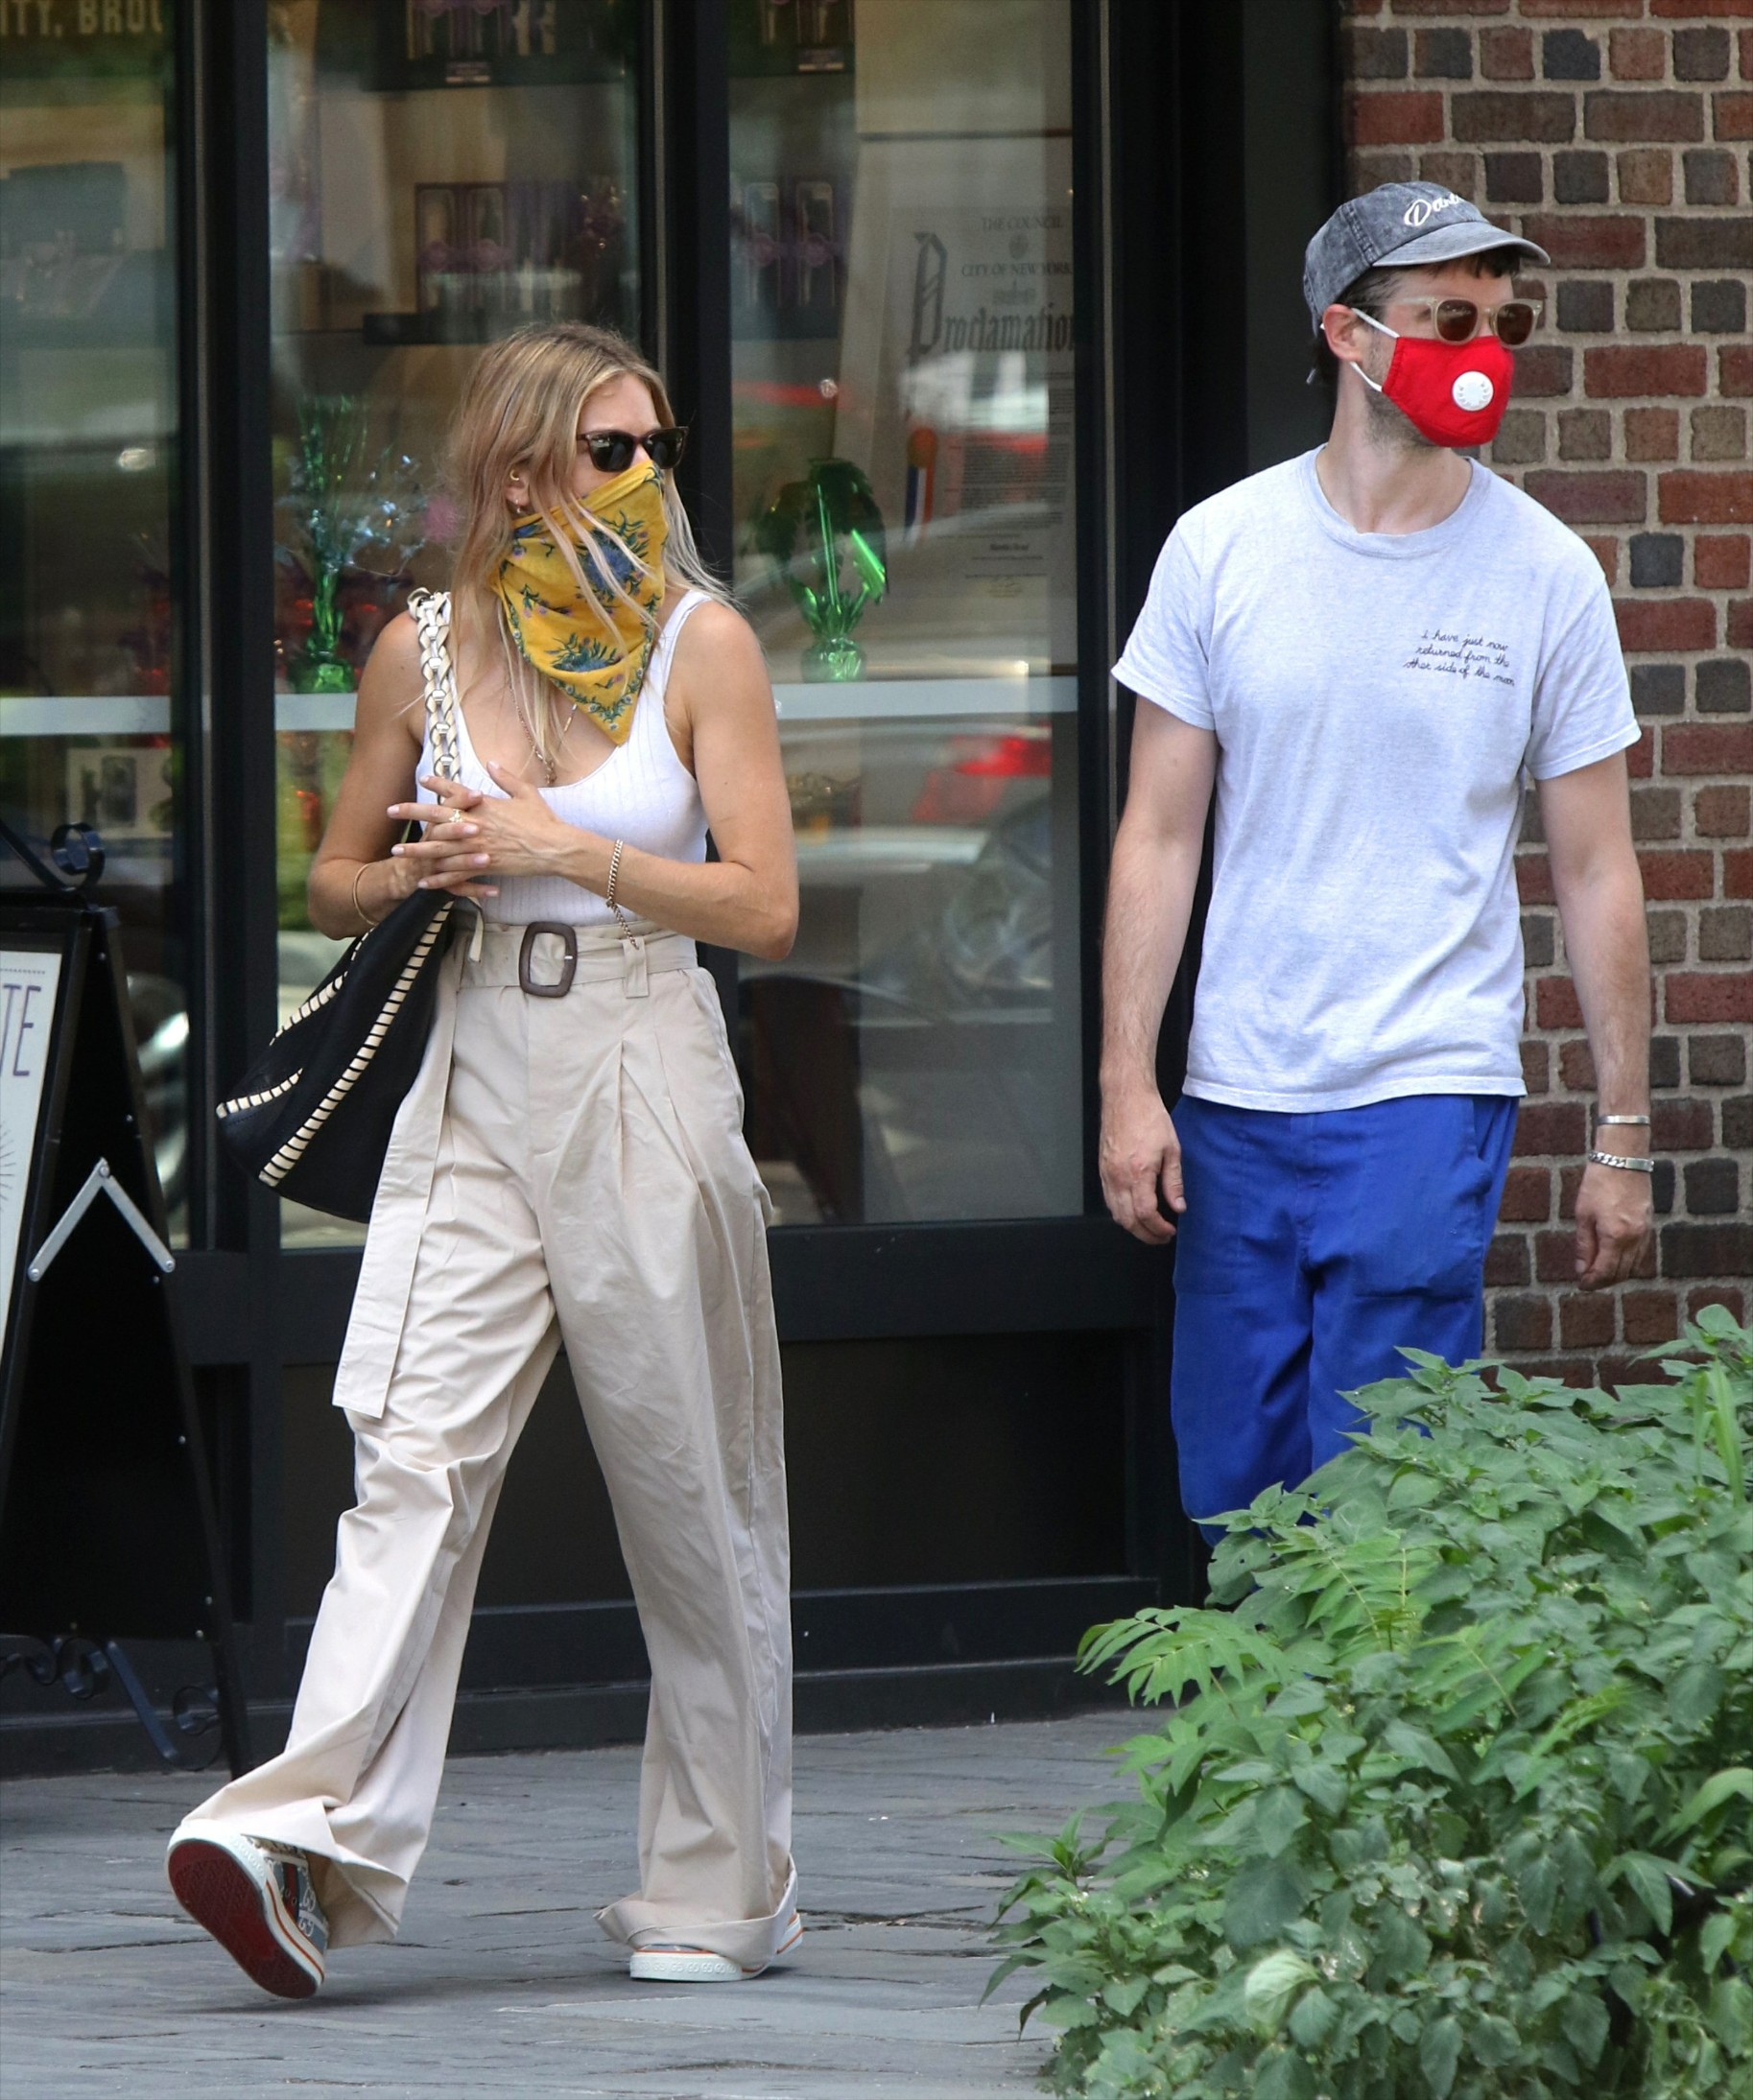 , New York, NY - 20200728 Sienna Miller and Tom Sturridge pictured out and about in the West Village.  -PICTURED: Sienna Miller, Tom Sturridge  -,Image: 547987173, License: Rights-managed, Restrictions: , Model Release: no, Credit line: Jose Perez/INSTARimages.com / INSTAR Images / Profimedia